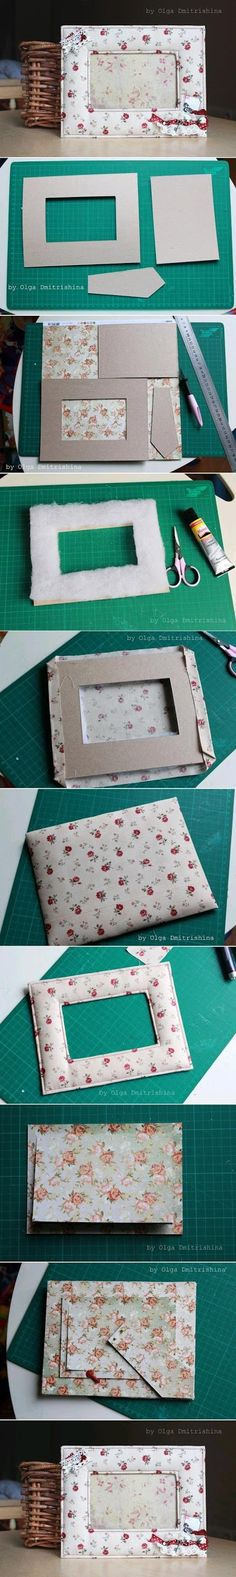 Easy Way To Make a Picture Frame